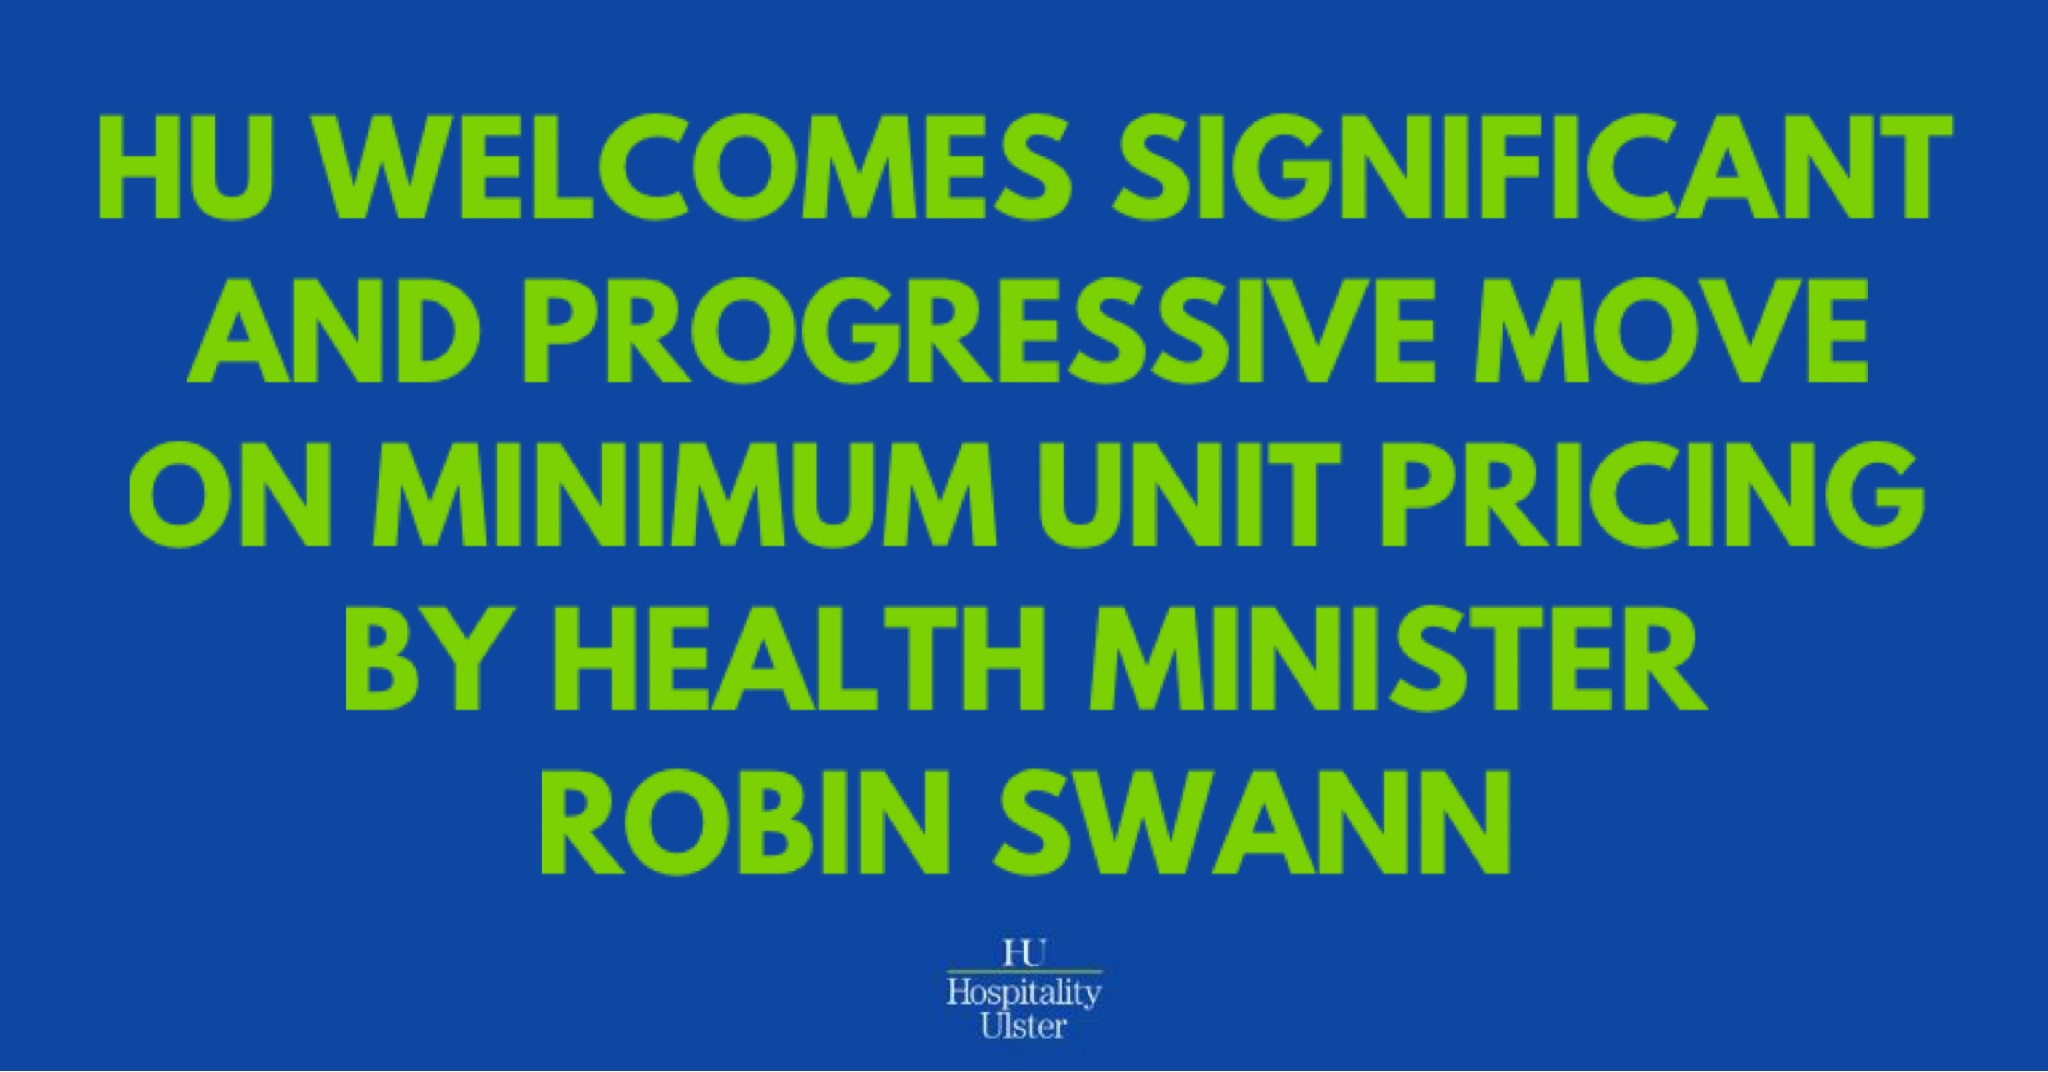 HU WELCOMES SIGNIFICANT AND PROGRESSIVE MOVE ON MINIMUM UNIT PRICING BY HEALTH MINISTER ROBIN SWANN